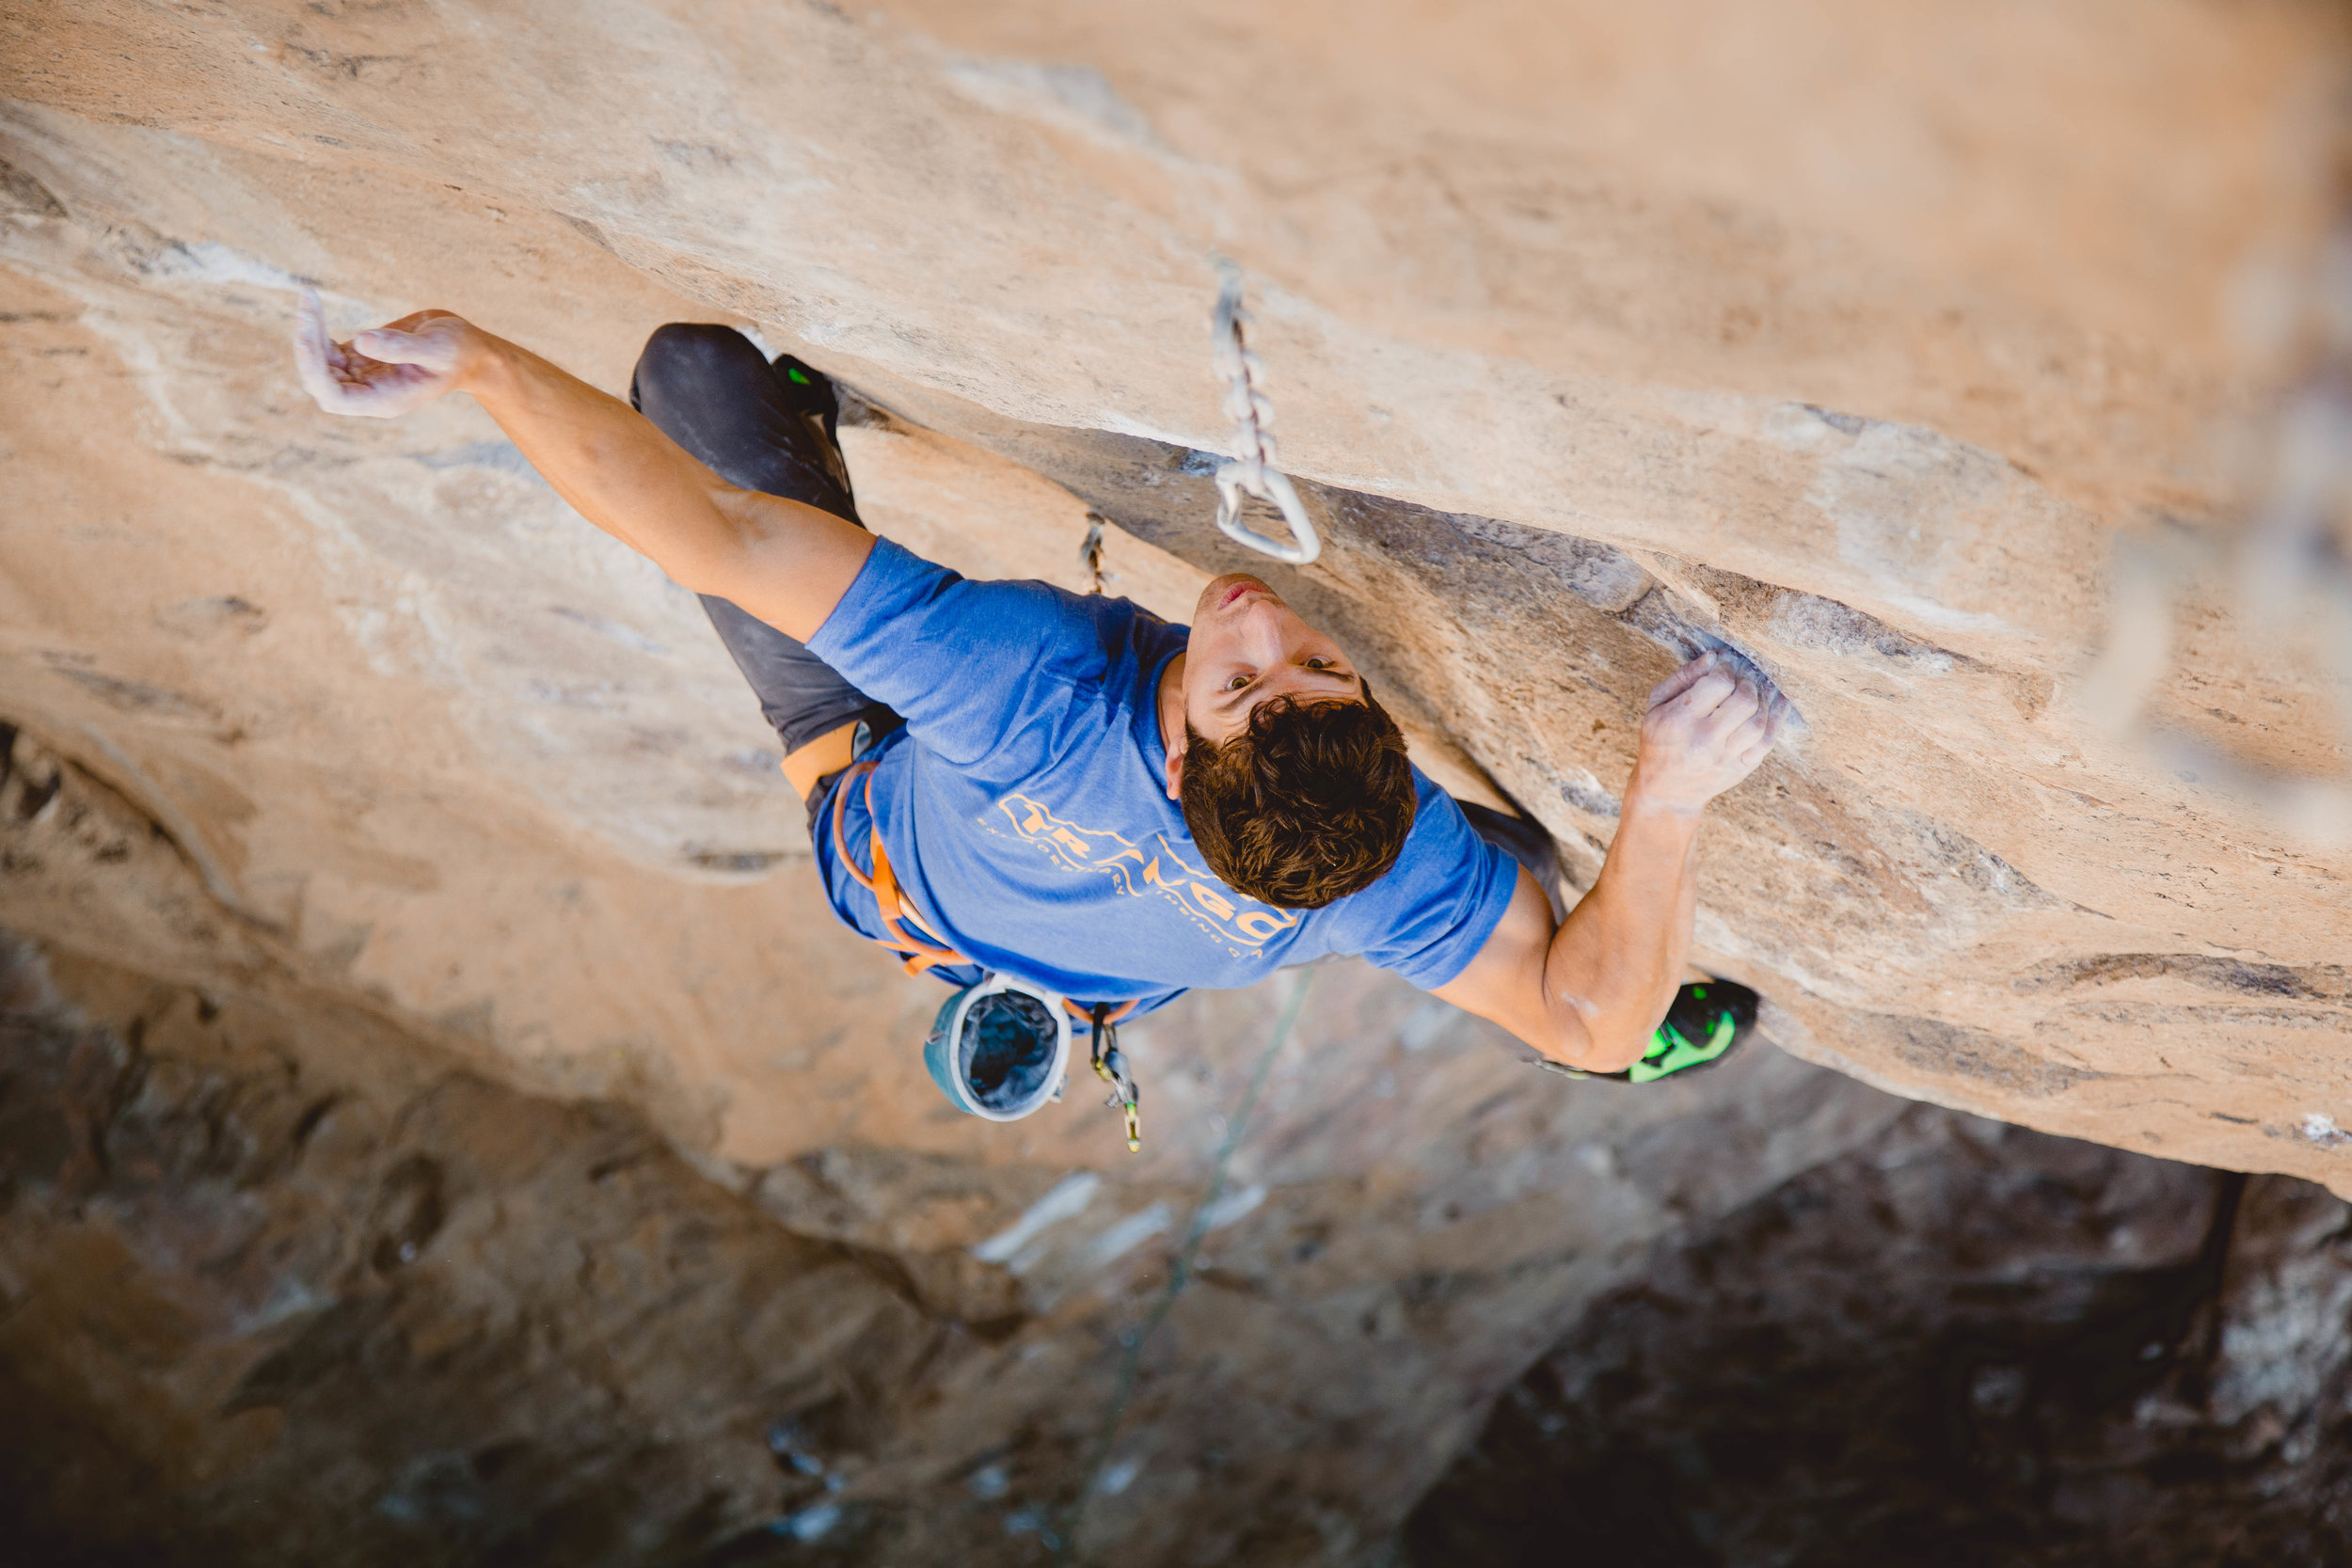 Nate Gerhardt - Is a 27 year old filmmaker / Photographer and mountain athlete.  Main sports are: Climbing, Alpine climbing, Skiing, and Trail Running